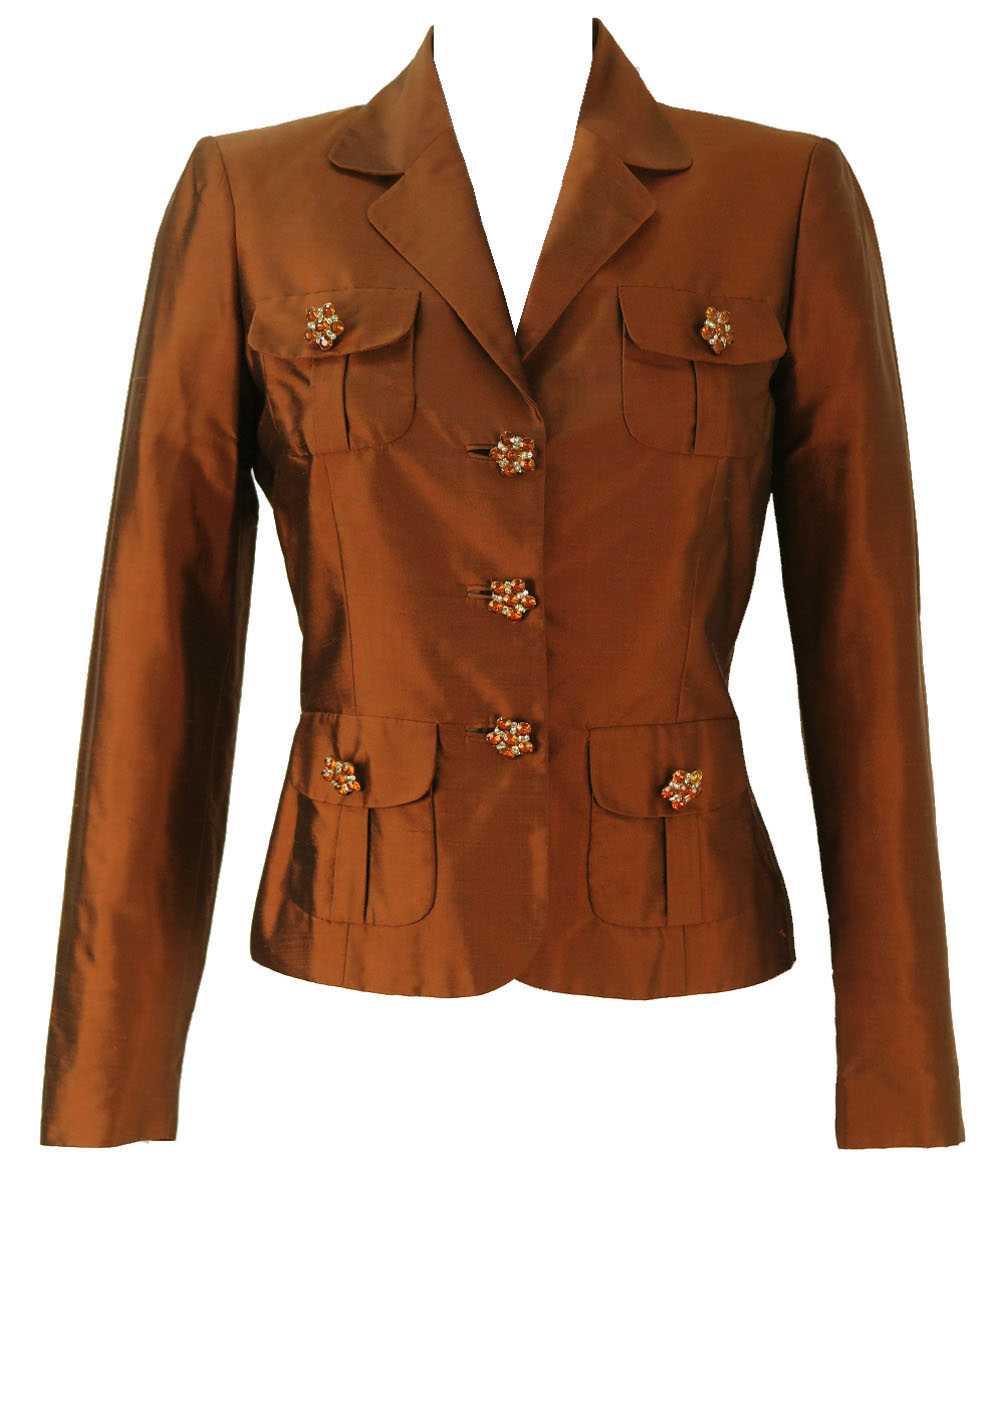 f7a07f3c73 Luisa Spagnoli Pure Silk Brown Jacket with Jewelled Buttons – S/M ...